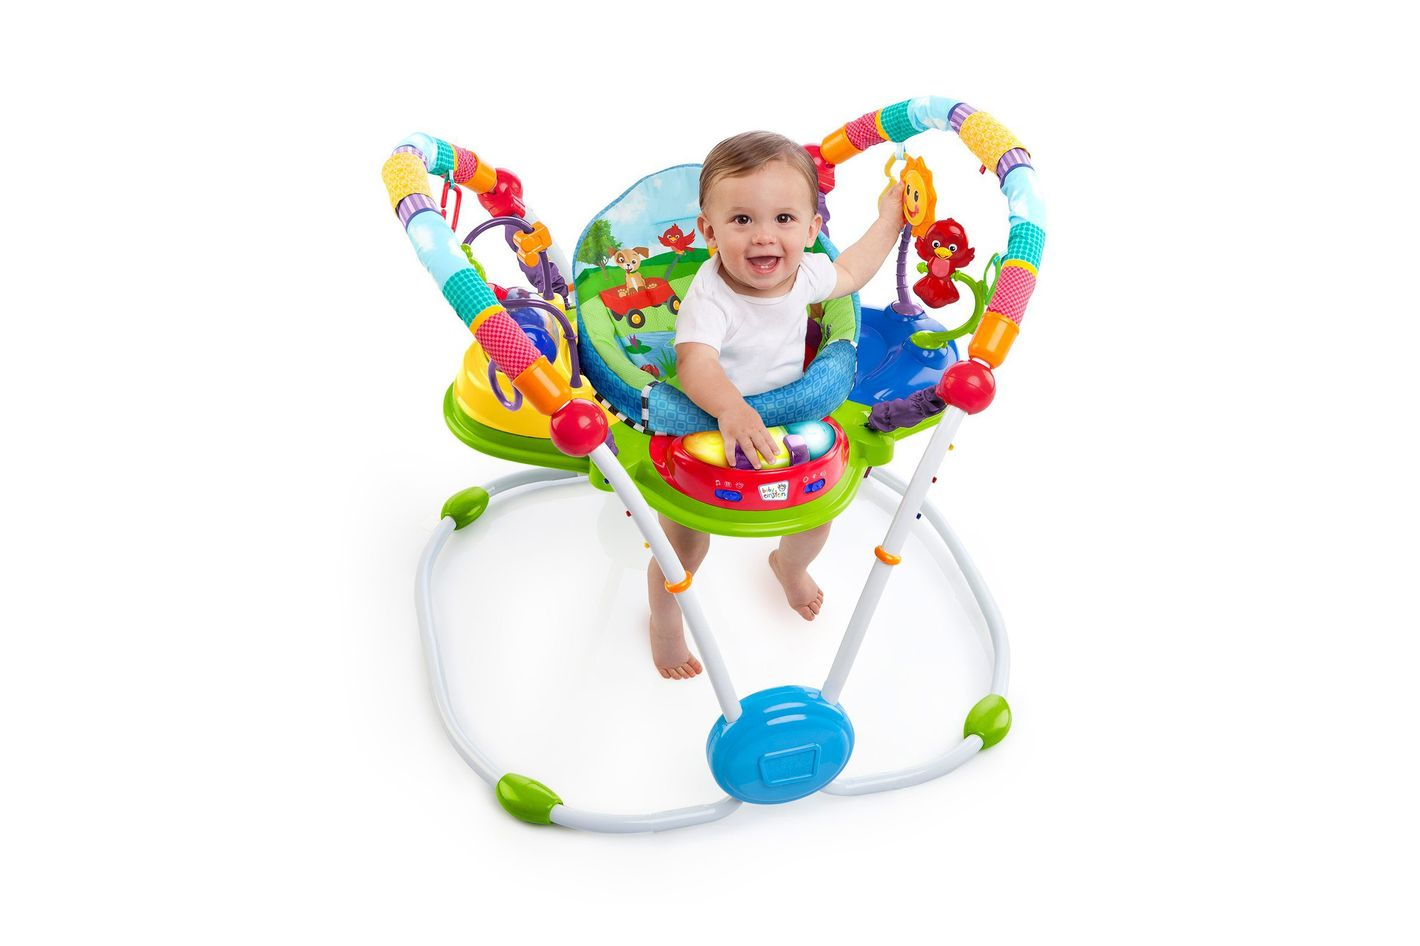 d17db0f3e The Best Baby Bouncers and Jumpers Reviews 2017